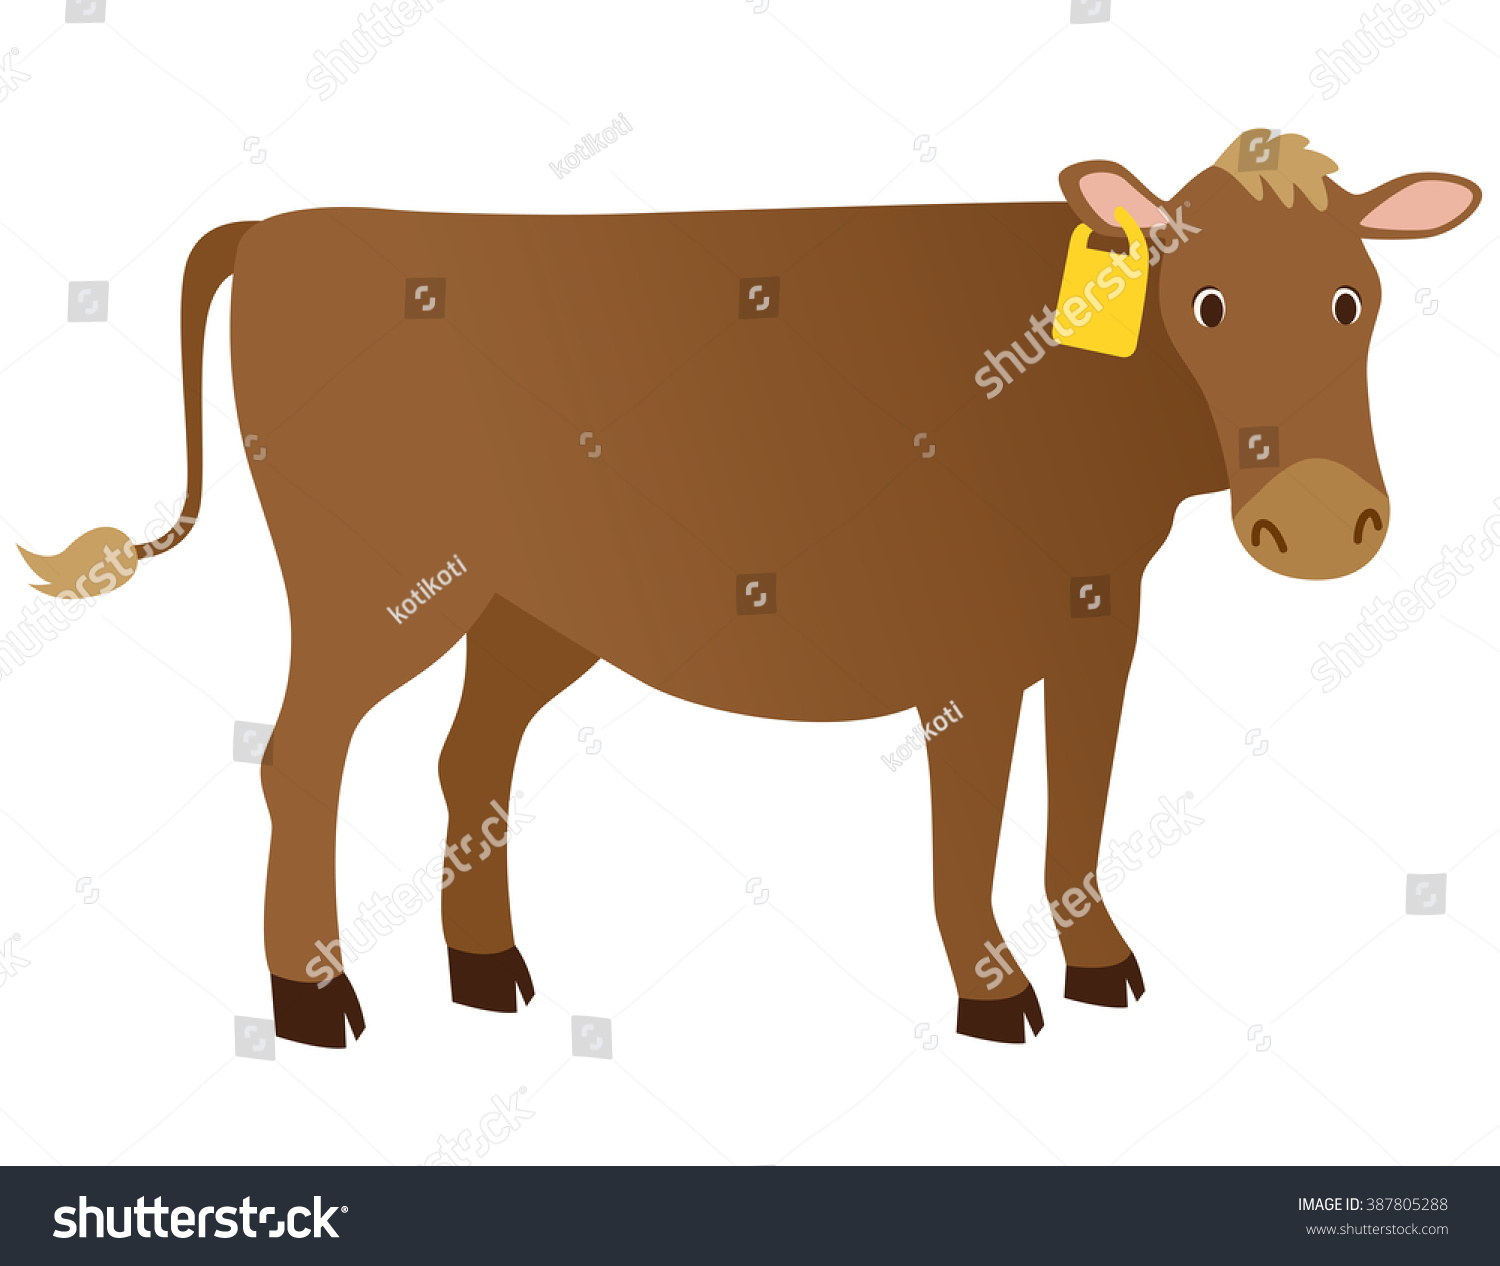 beef cattle ear tag stock illustration 387805288 https www shutterstock com image illustration beef cattle ear tag 387805288